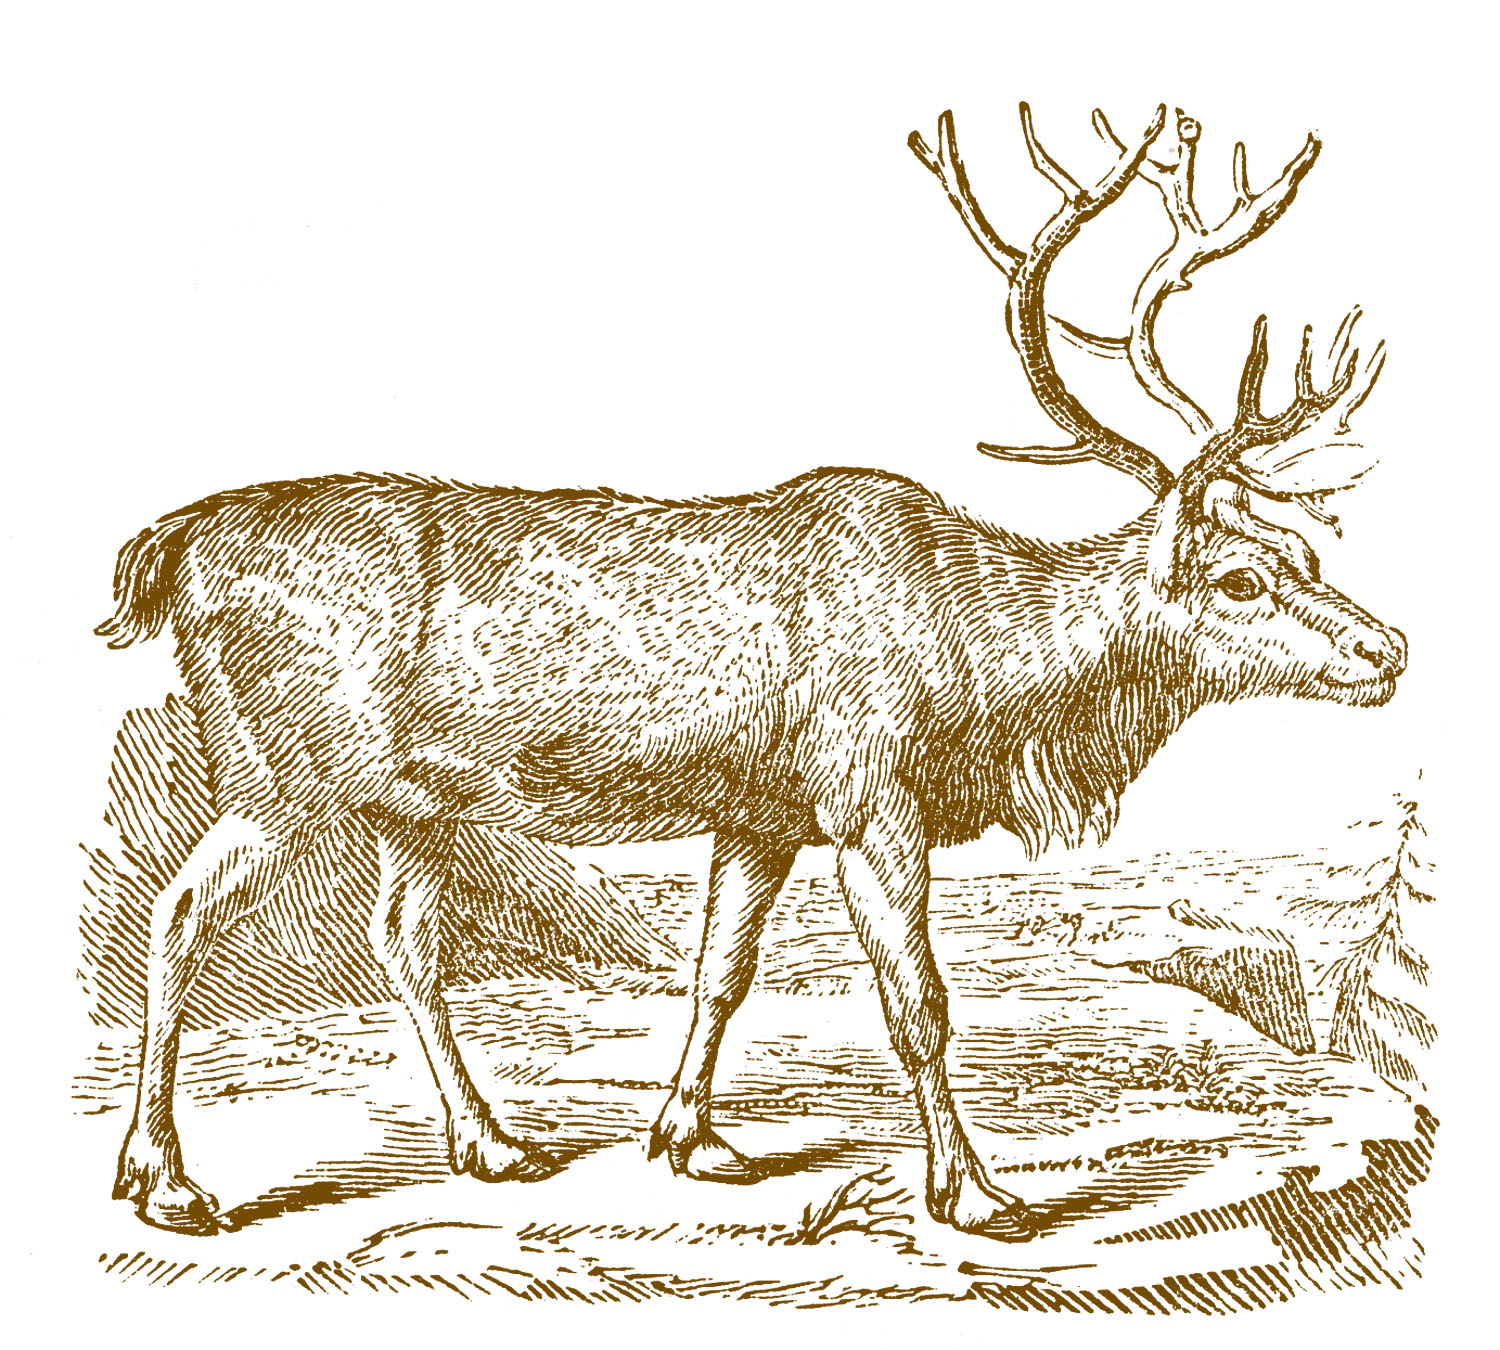 Christmas Images – Reindeer from an early Natural History Book for Handmade Christmas Cards or Craft Projects.